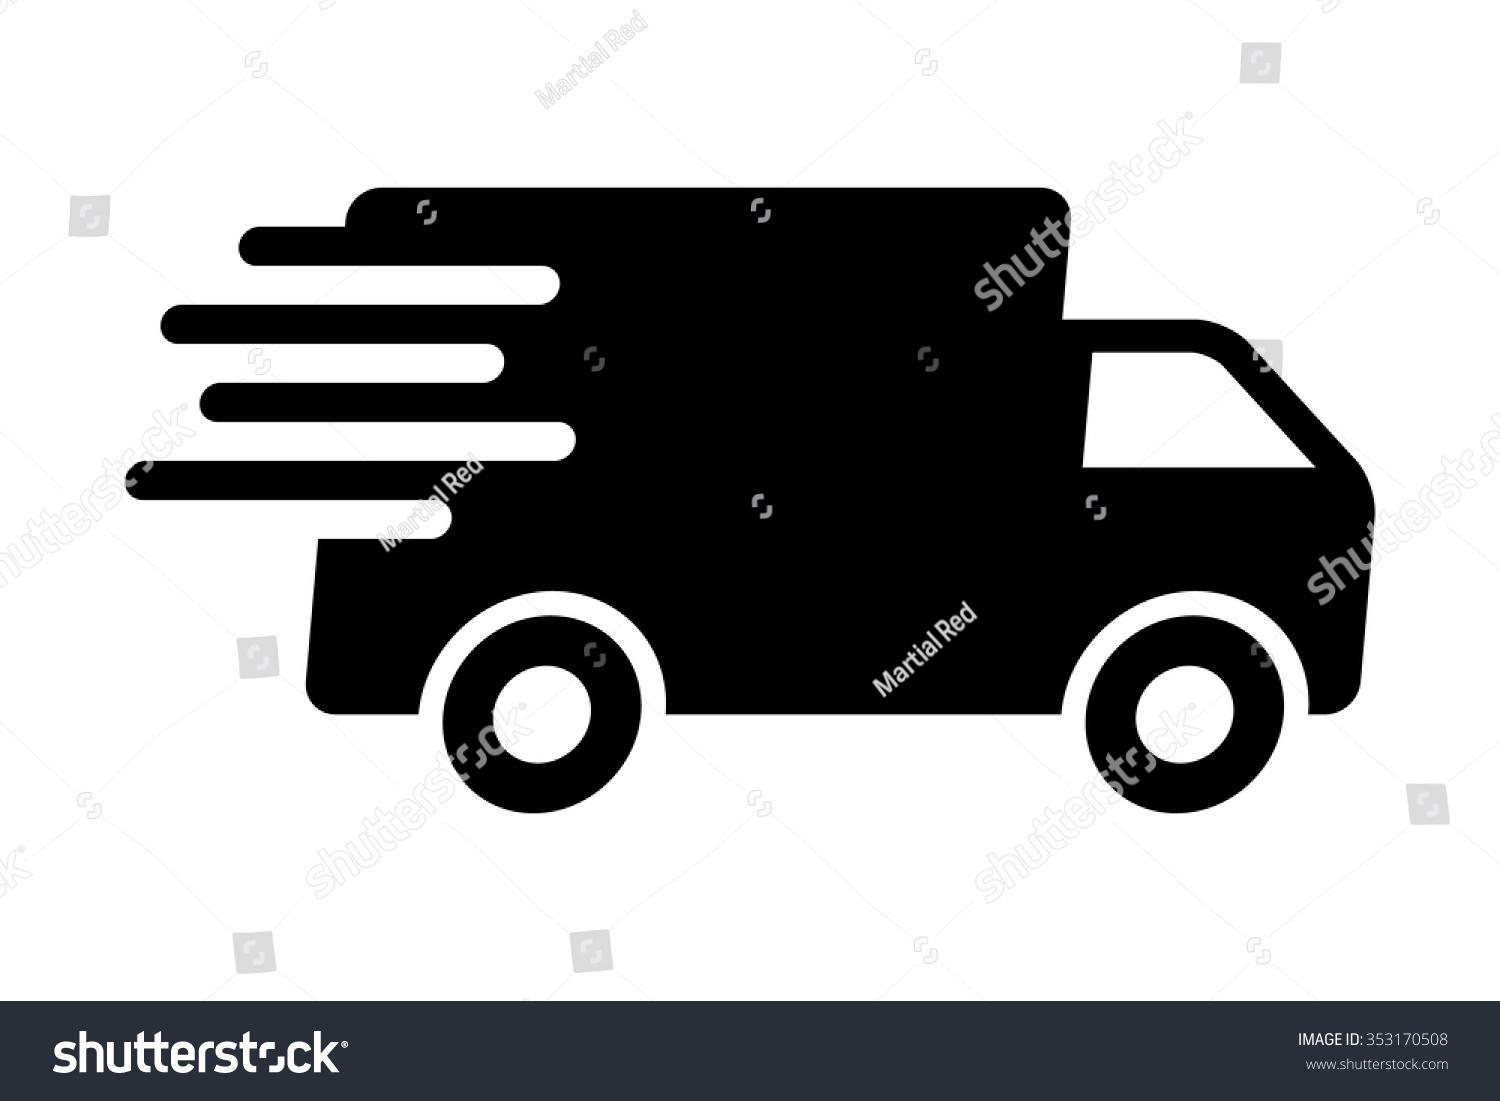 Fast shipping delivery truck flat icon stock vector for Food truck design app